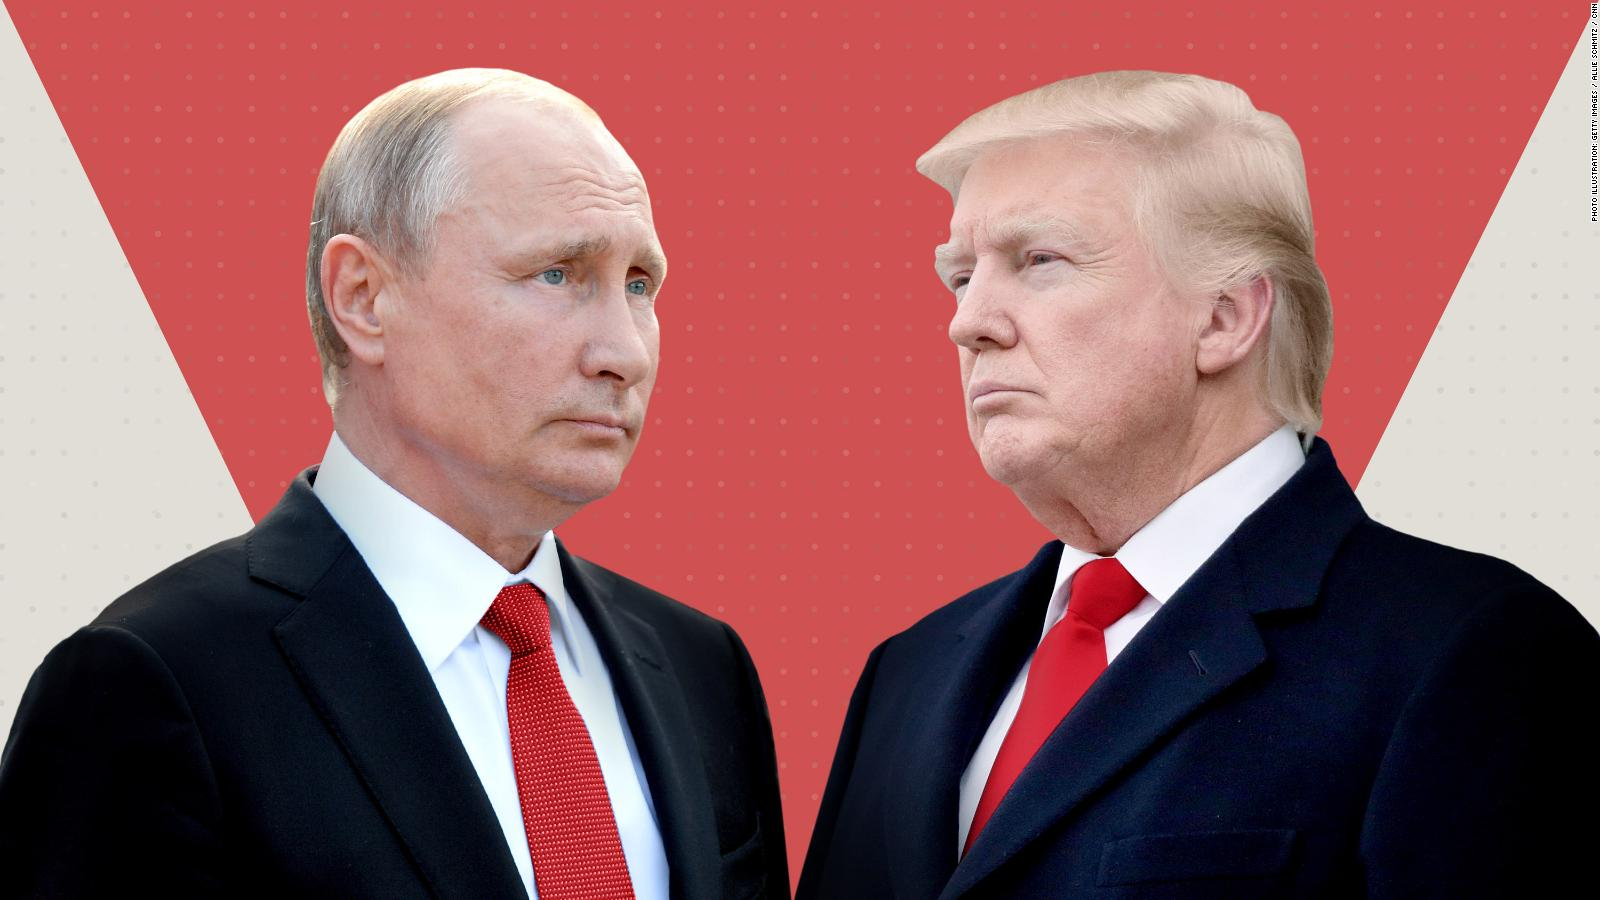 What do Donald Trump and Vladimir Putin's watch collections say about them?